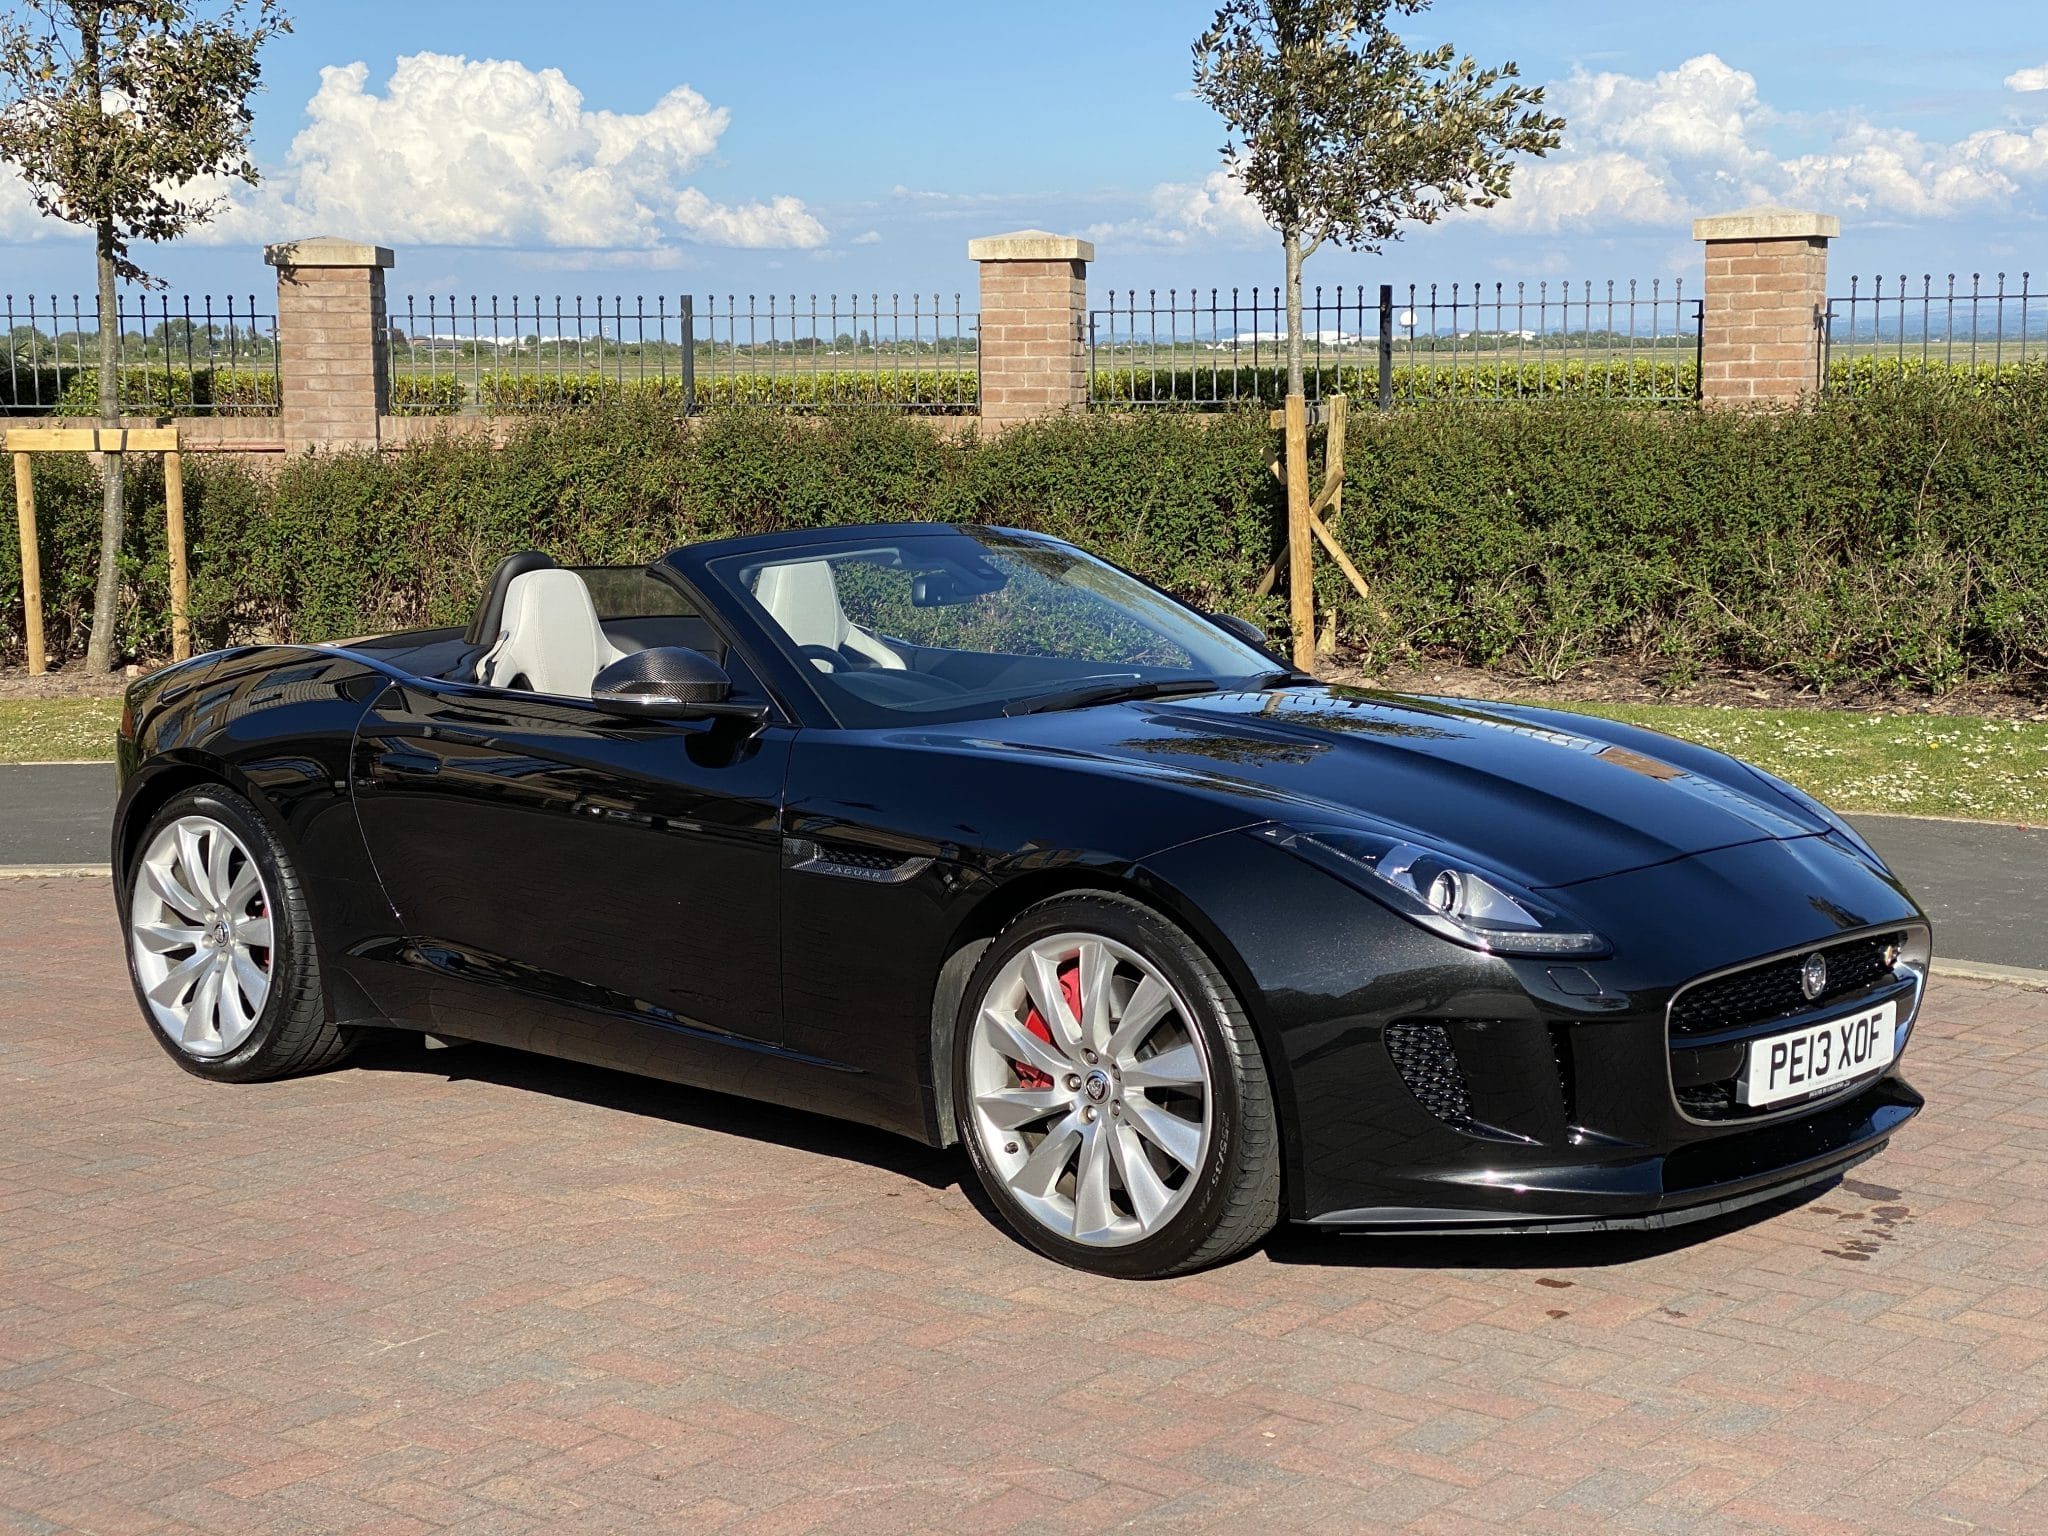 2013 13 JAGUAR F TYPE 3.0 V6 S QUICKSHIFT CONVERTIBLE 380BHP ONLY 38K Mls Pristine Example